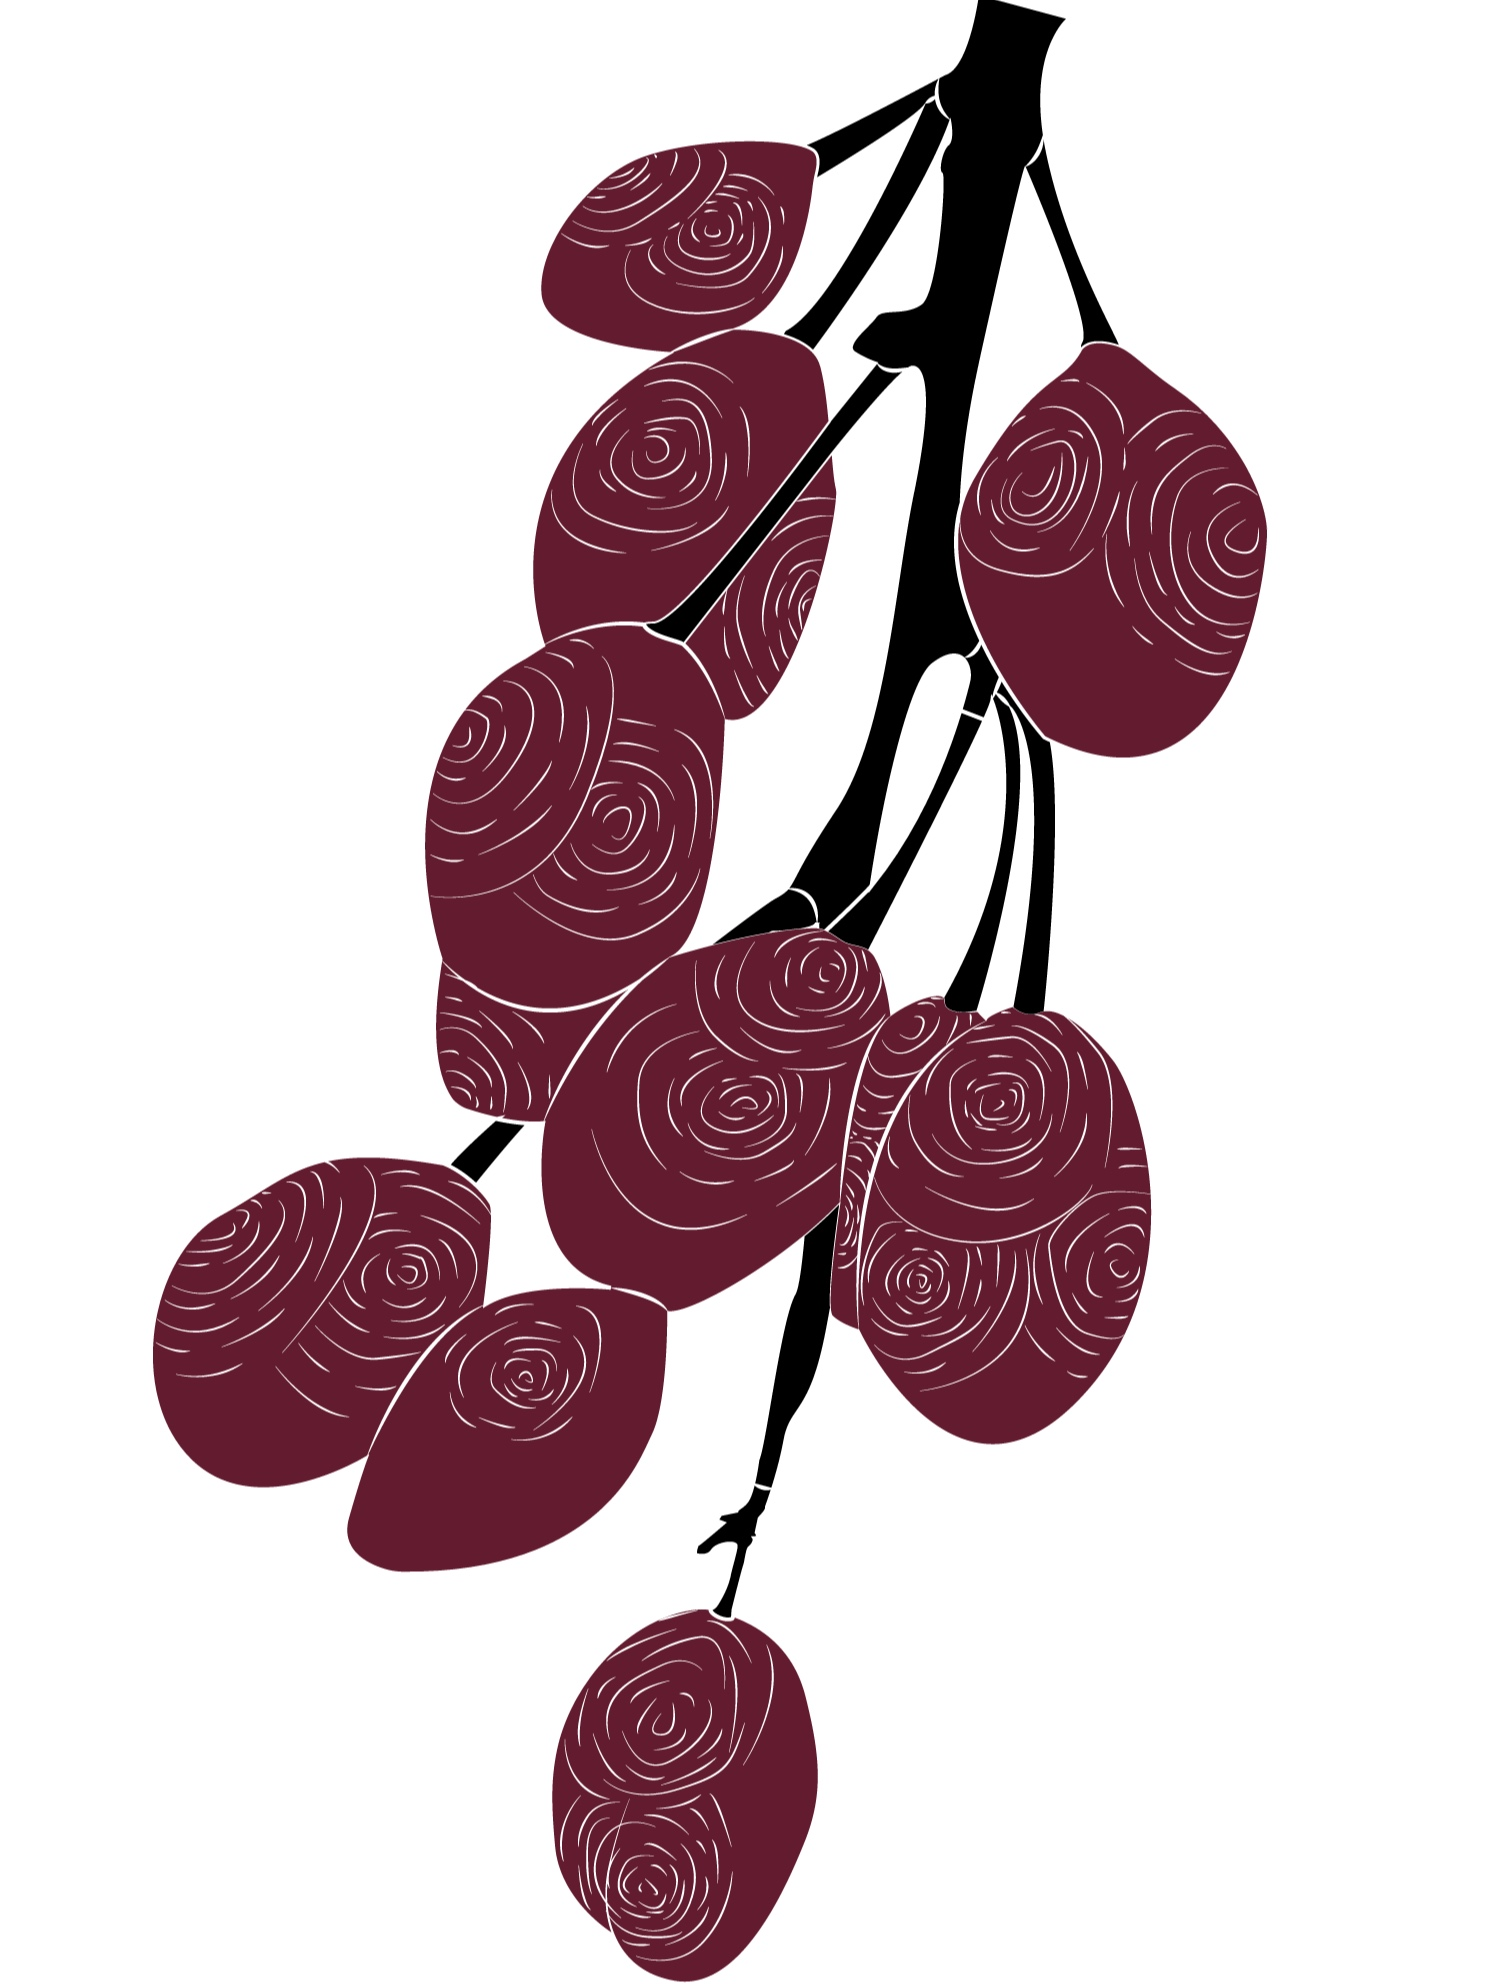 Plum-Branch-Black.jpg